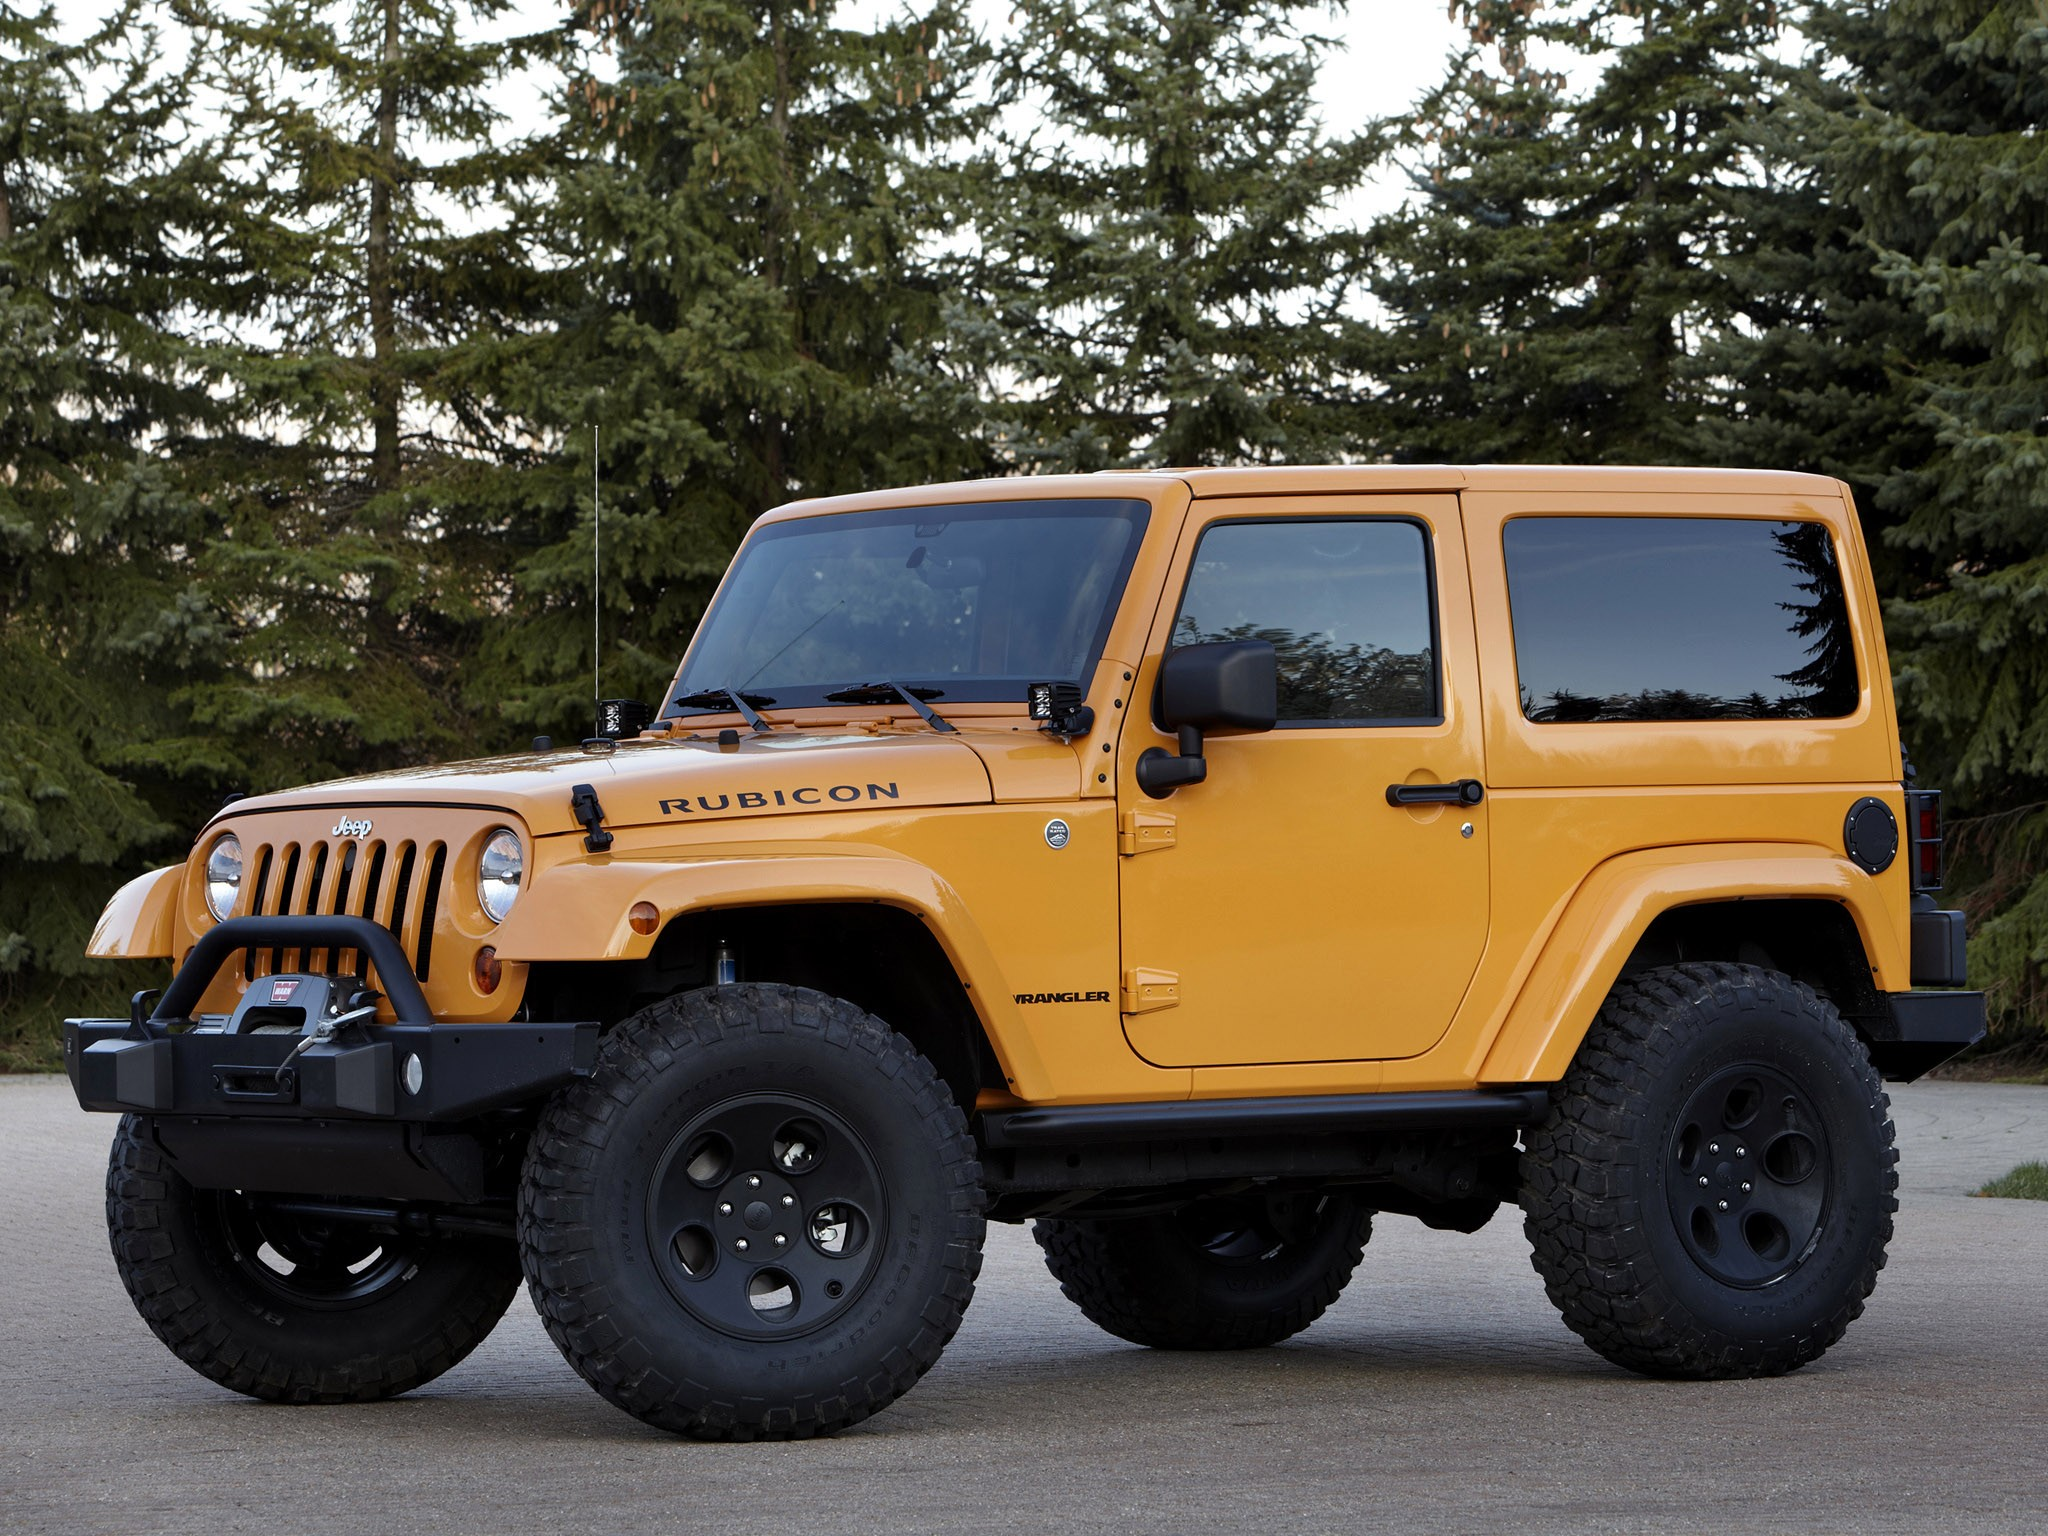 2012 Jeep Wrangler Mopar Accessorized Concept